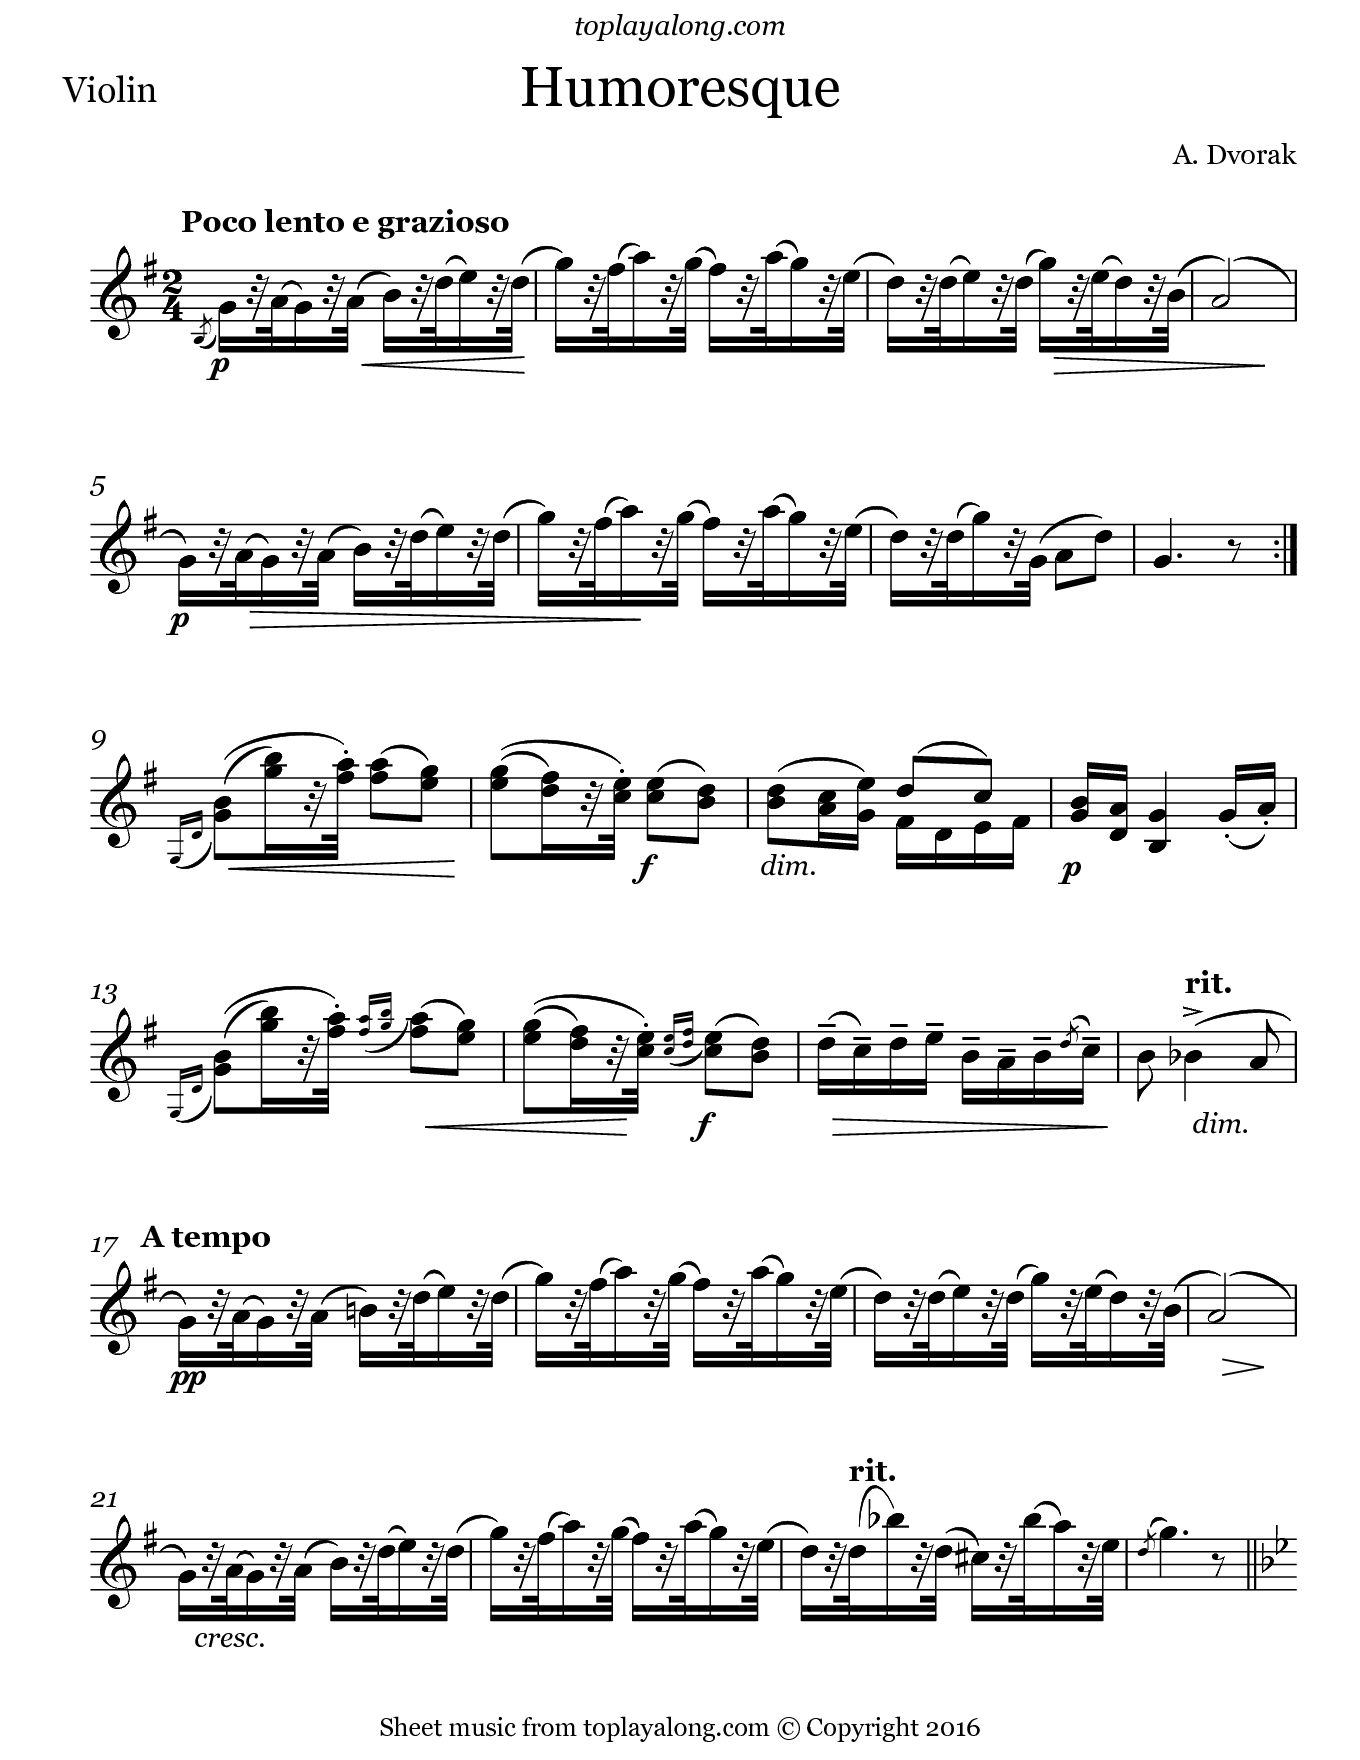 Humoresque No. 7 by Dvorak. Sheet music for Violin, page 1.